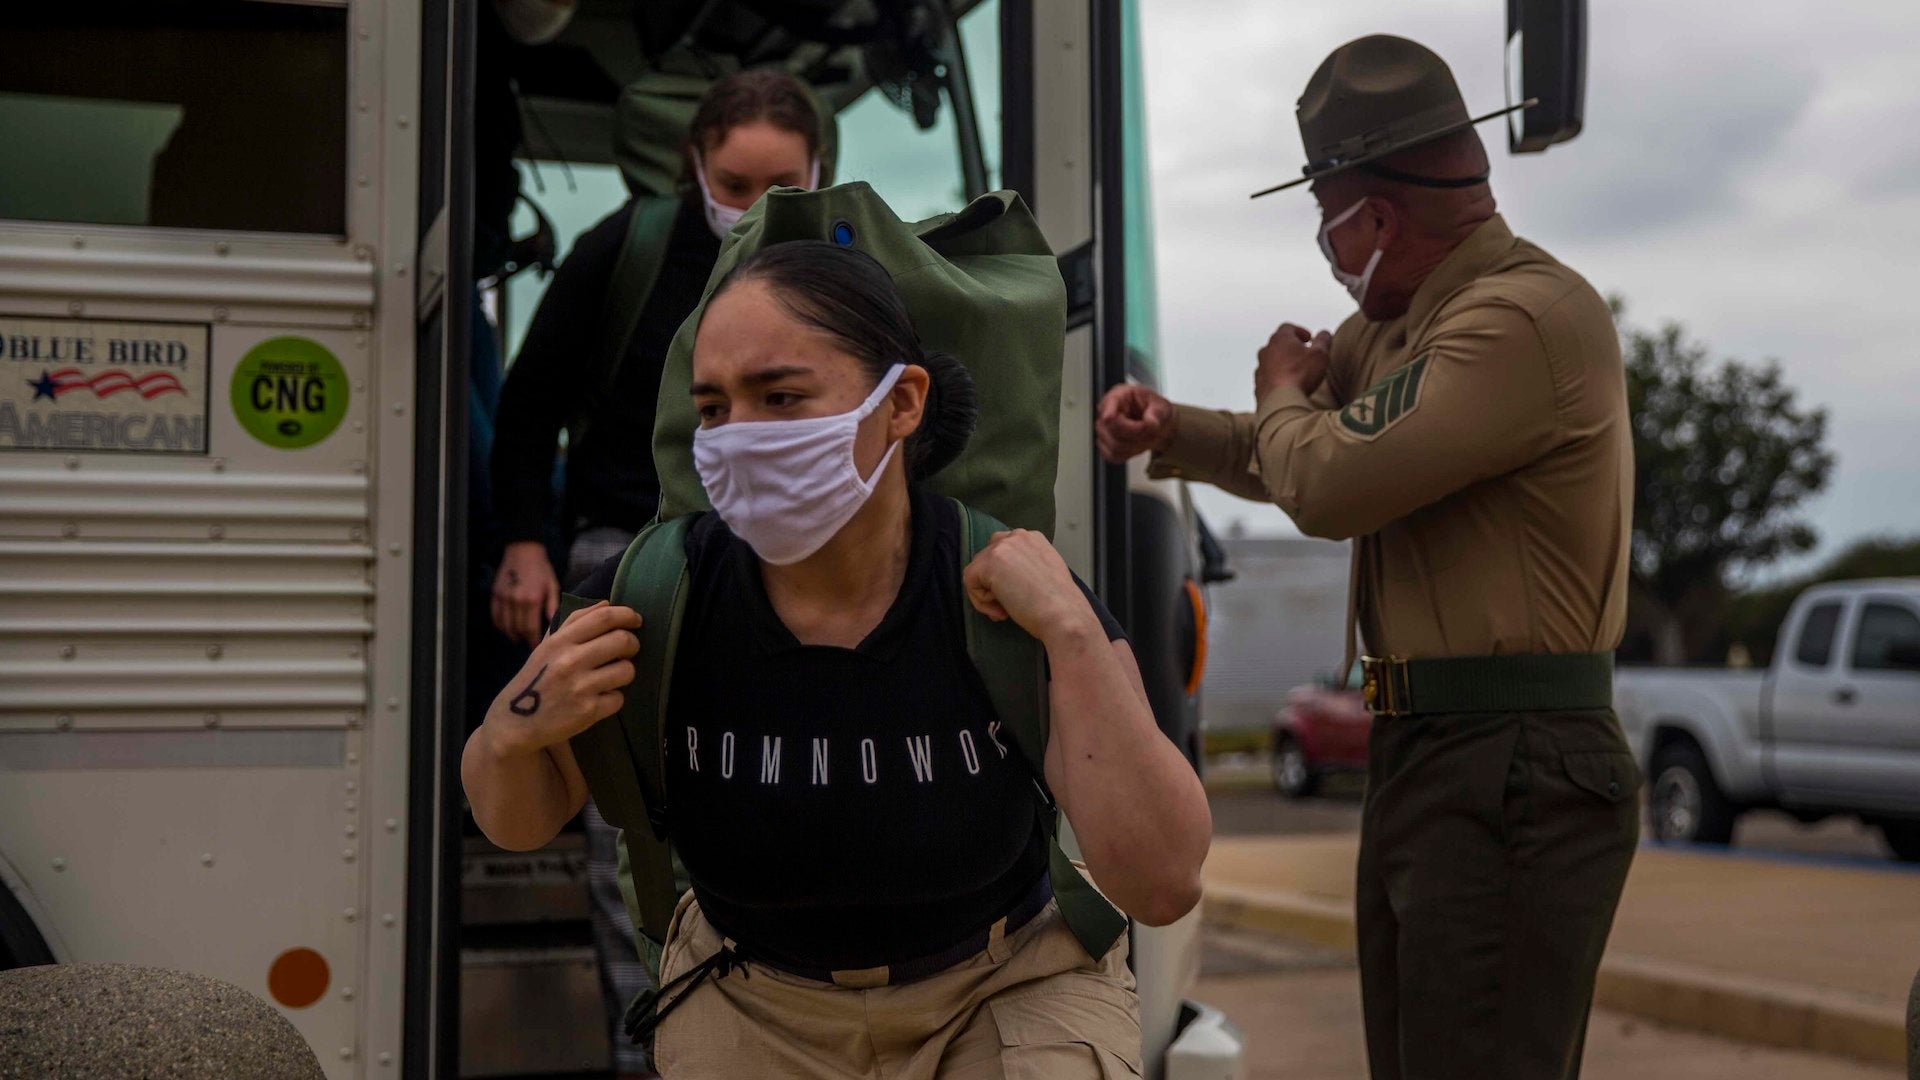 Female Marine recruits have arrived at Recruit Depot San Diego for training for the first time ever